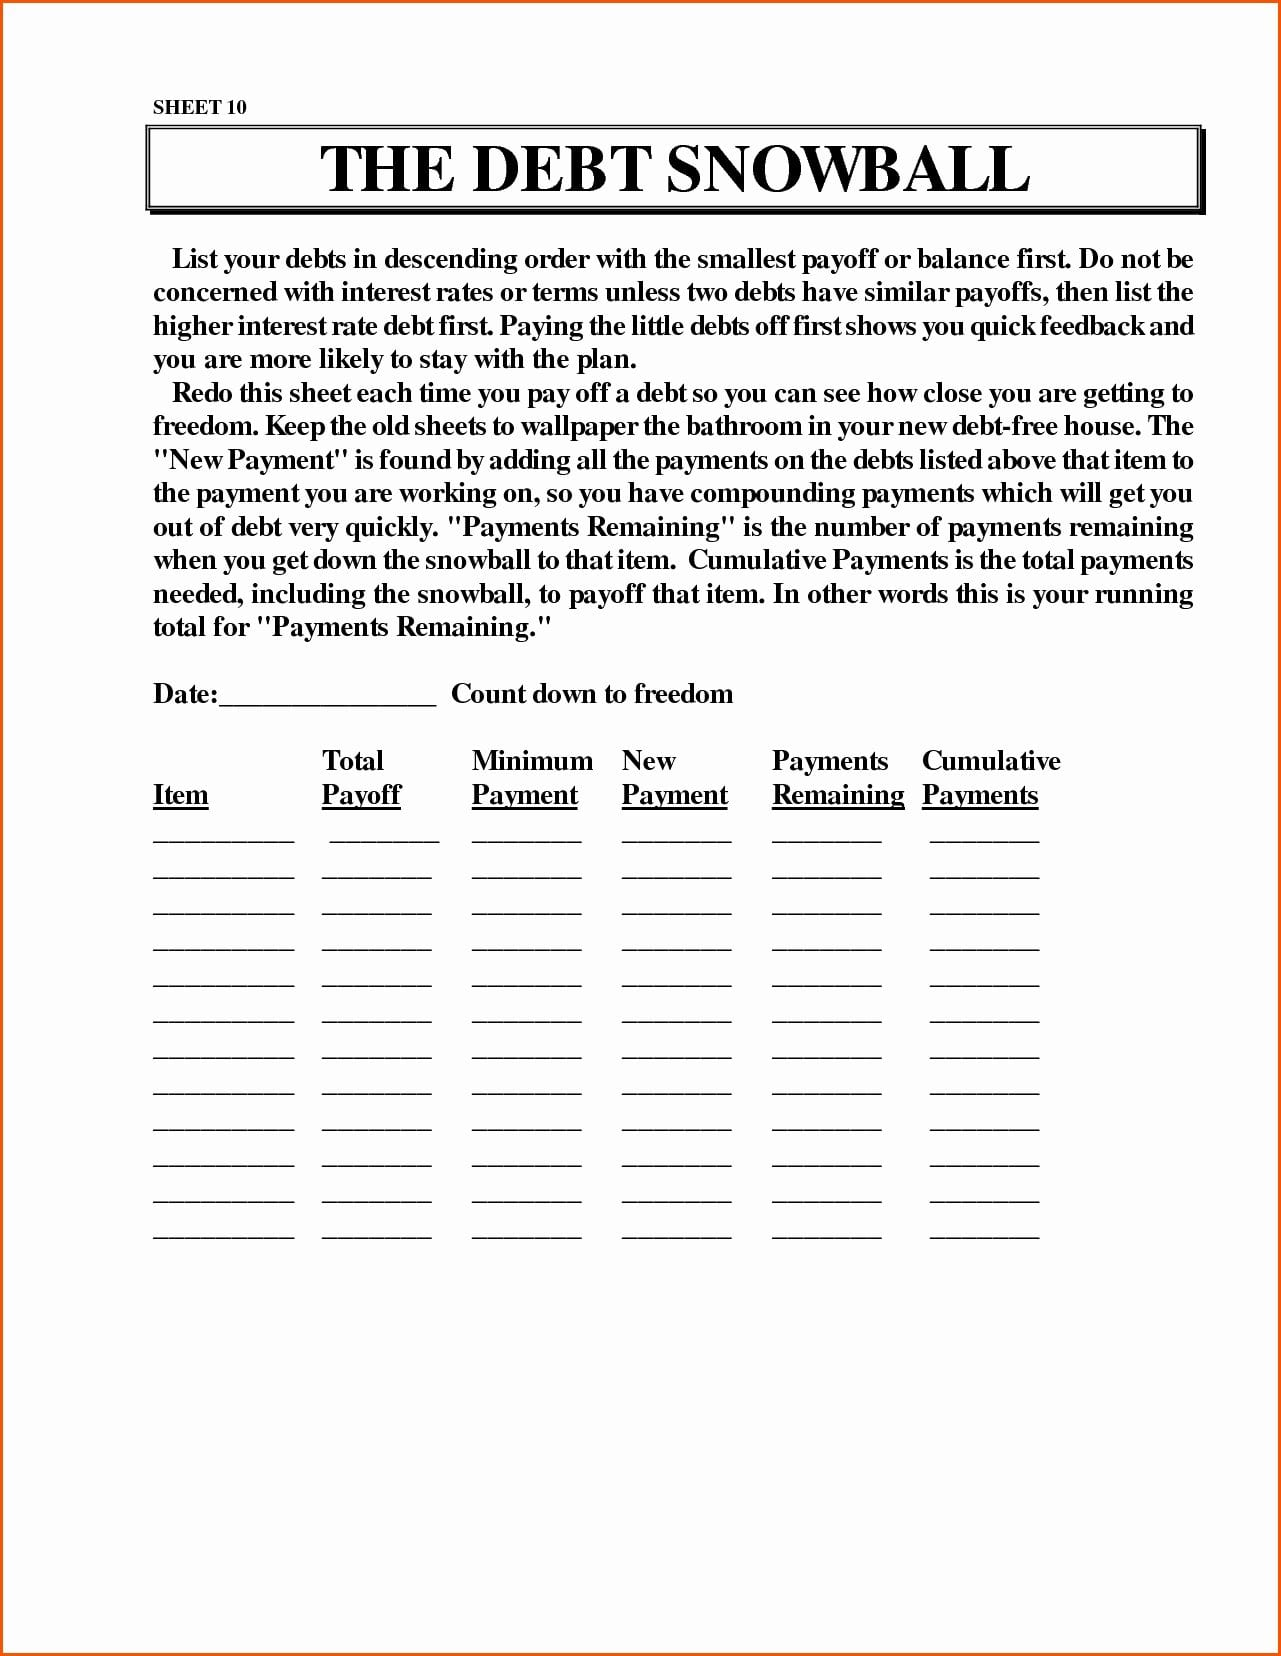 Dave Ramsey Debt Snowball Worksheets — excelguider.com